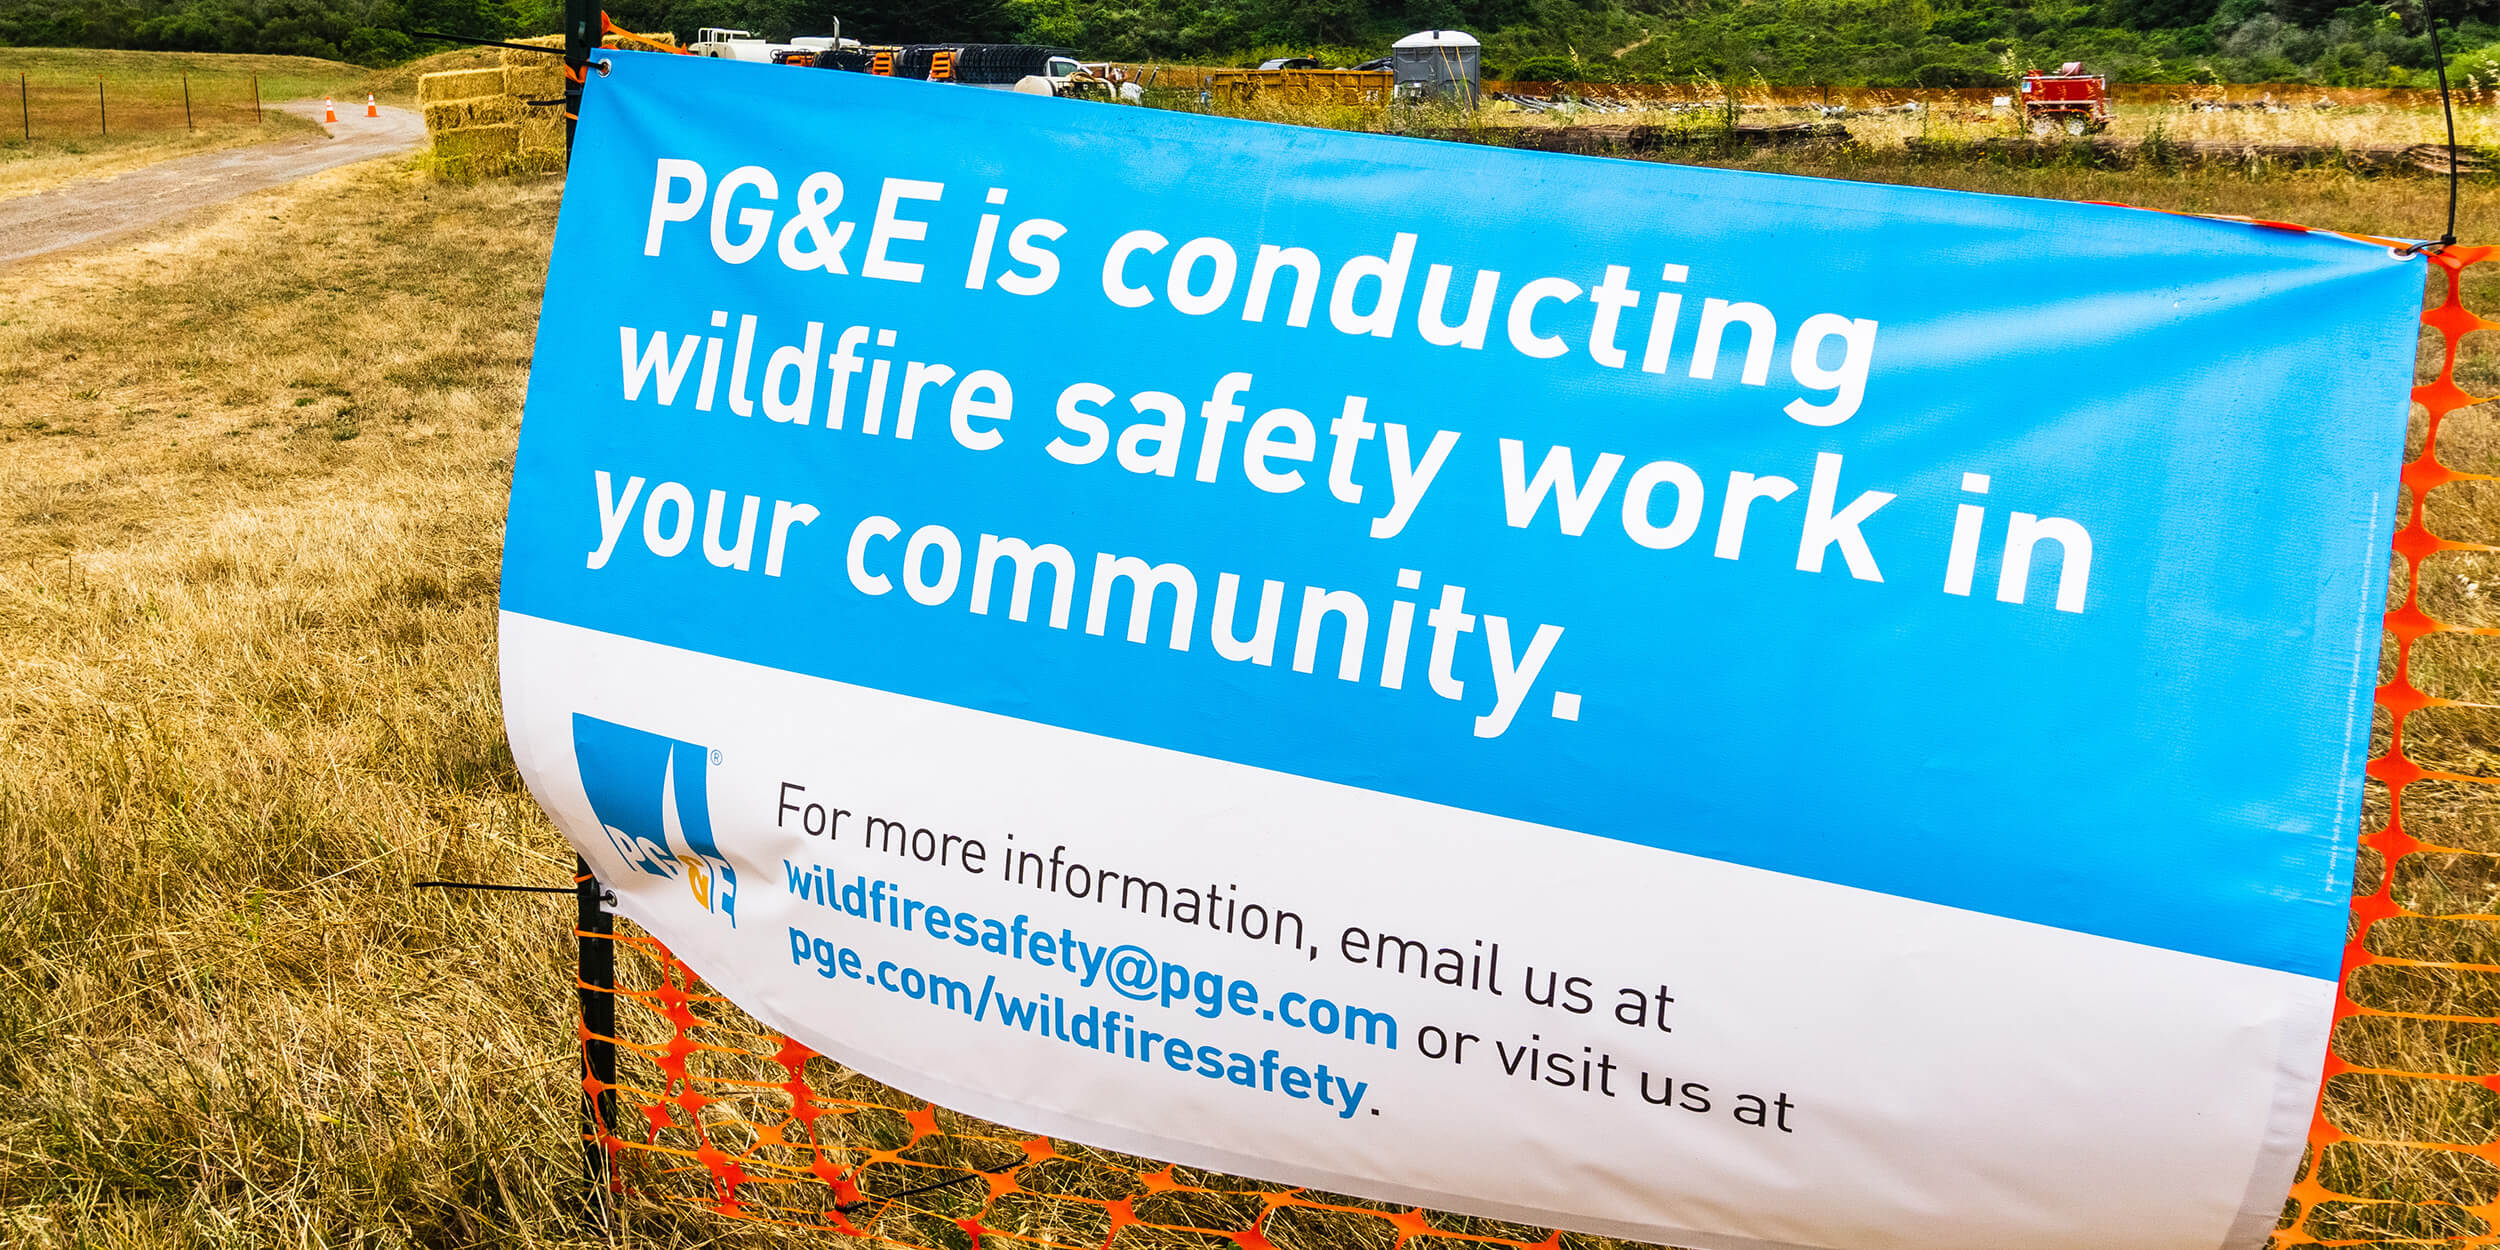 """""""pg&e is conducting wildfire safety work in your community"""" sign on construction fencing"""